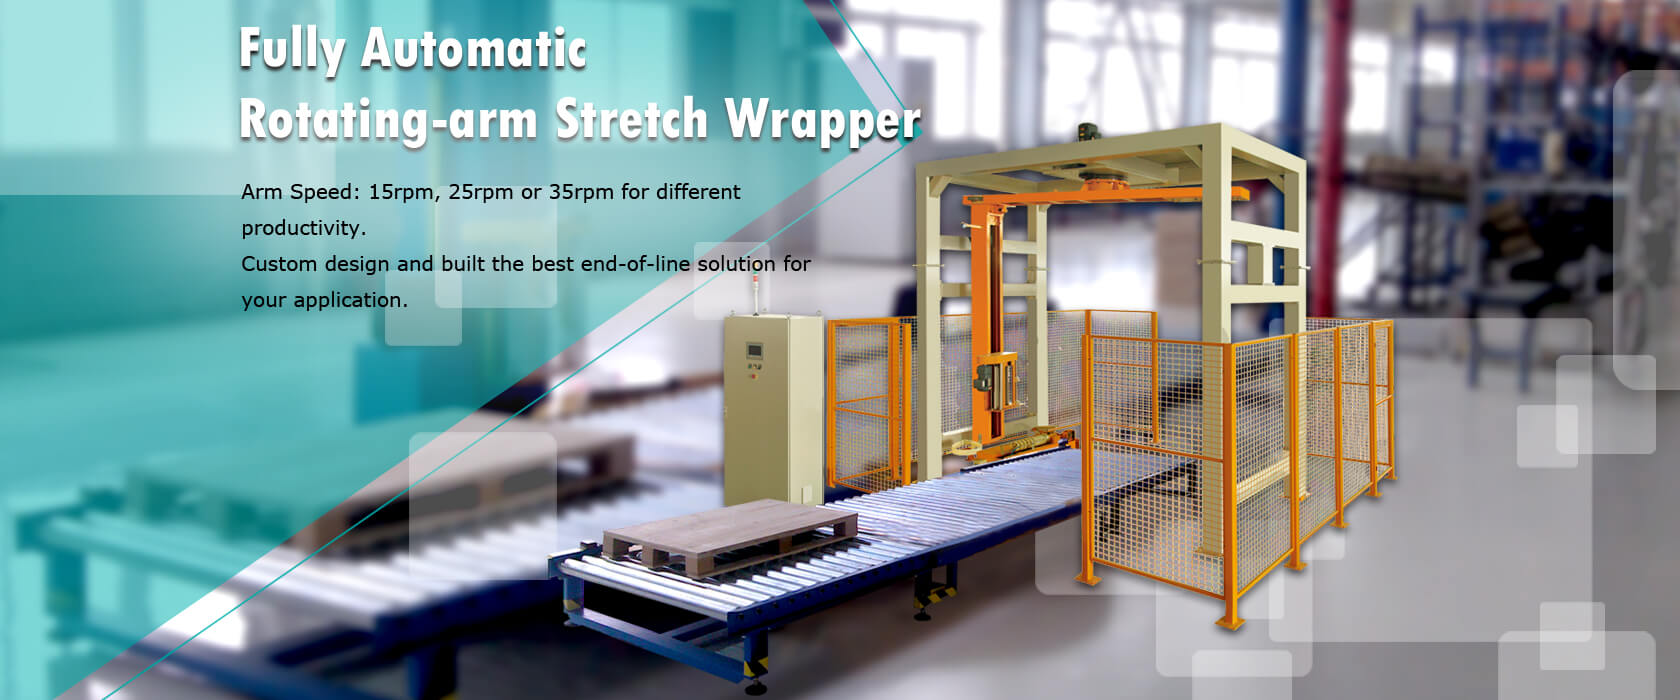 Fully Automatic Rotating-arm Stretch Wrapper